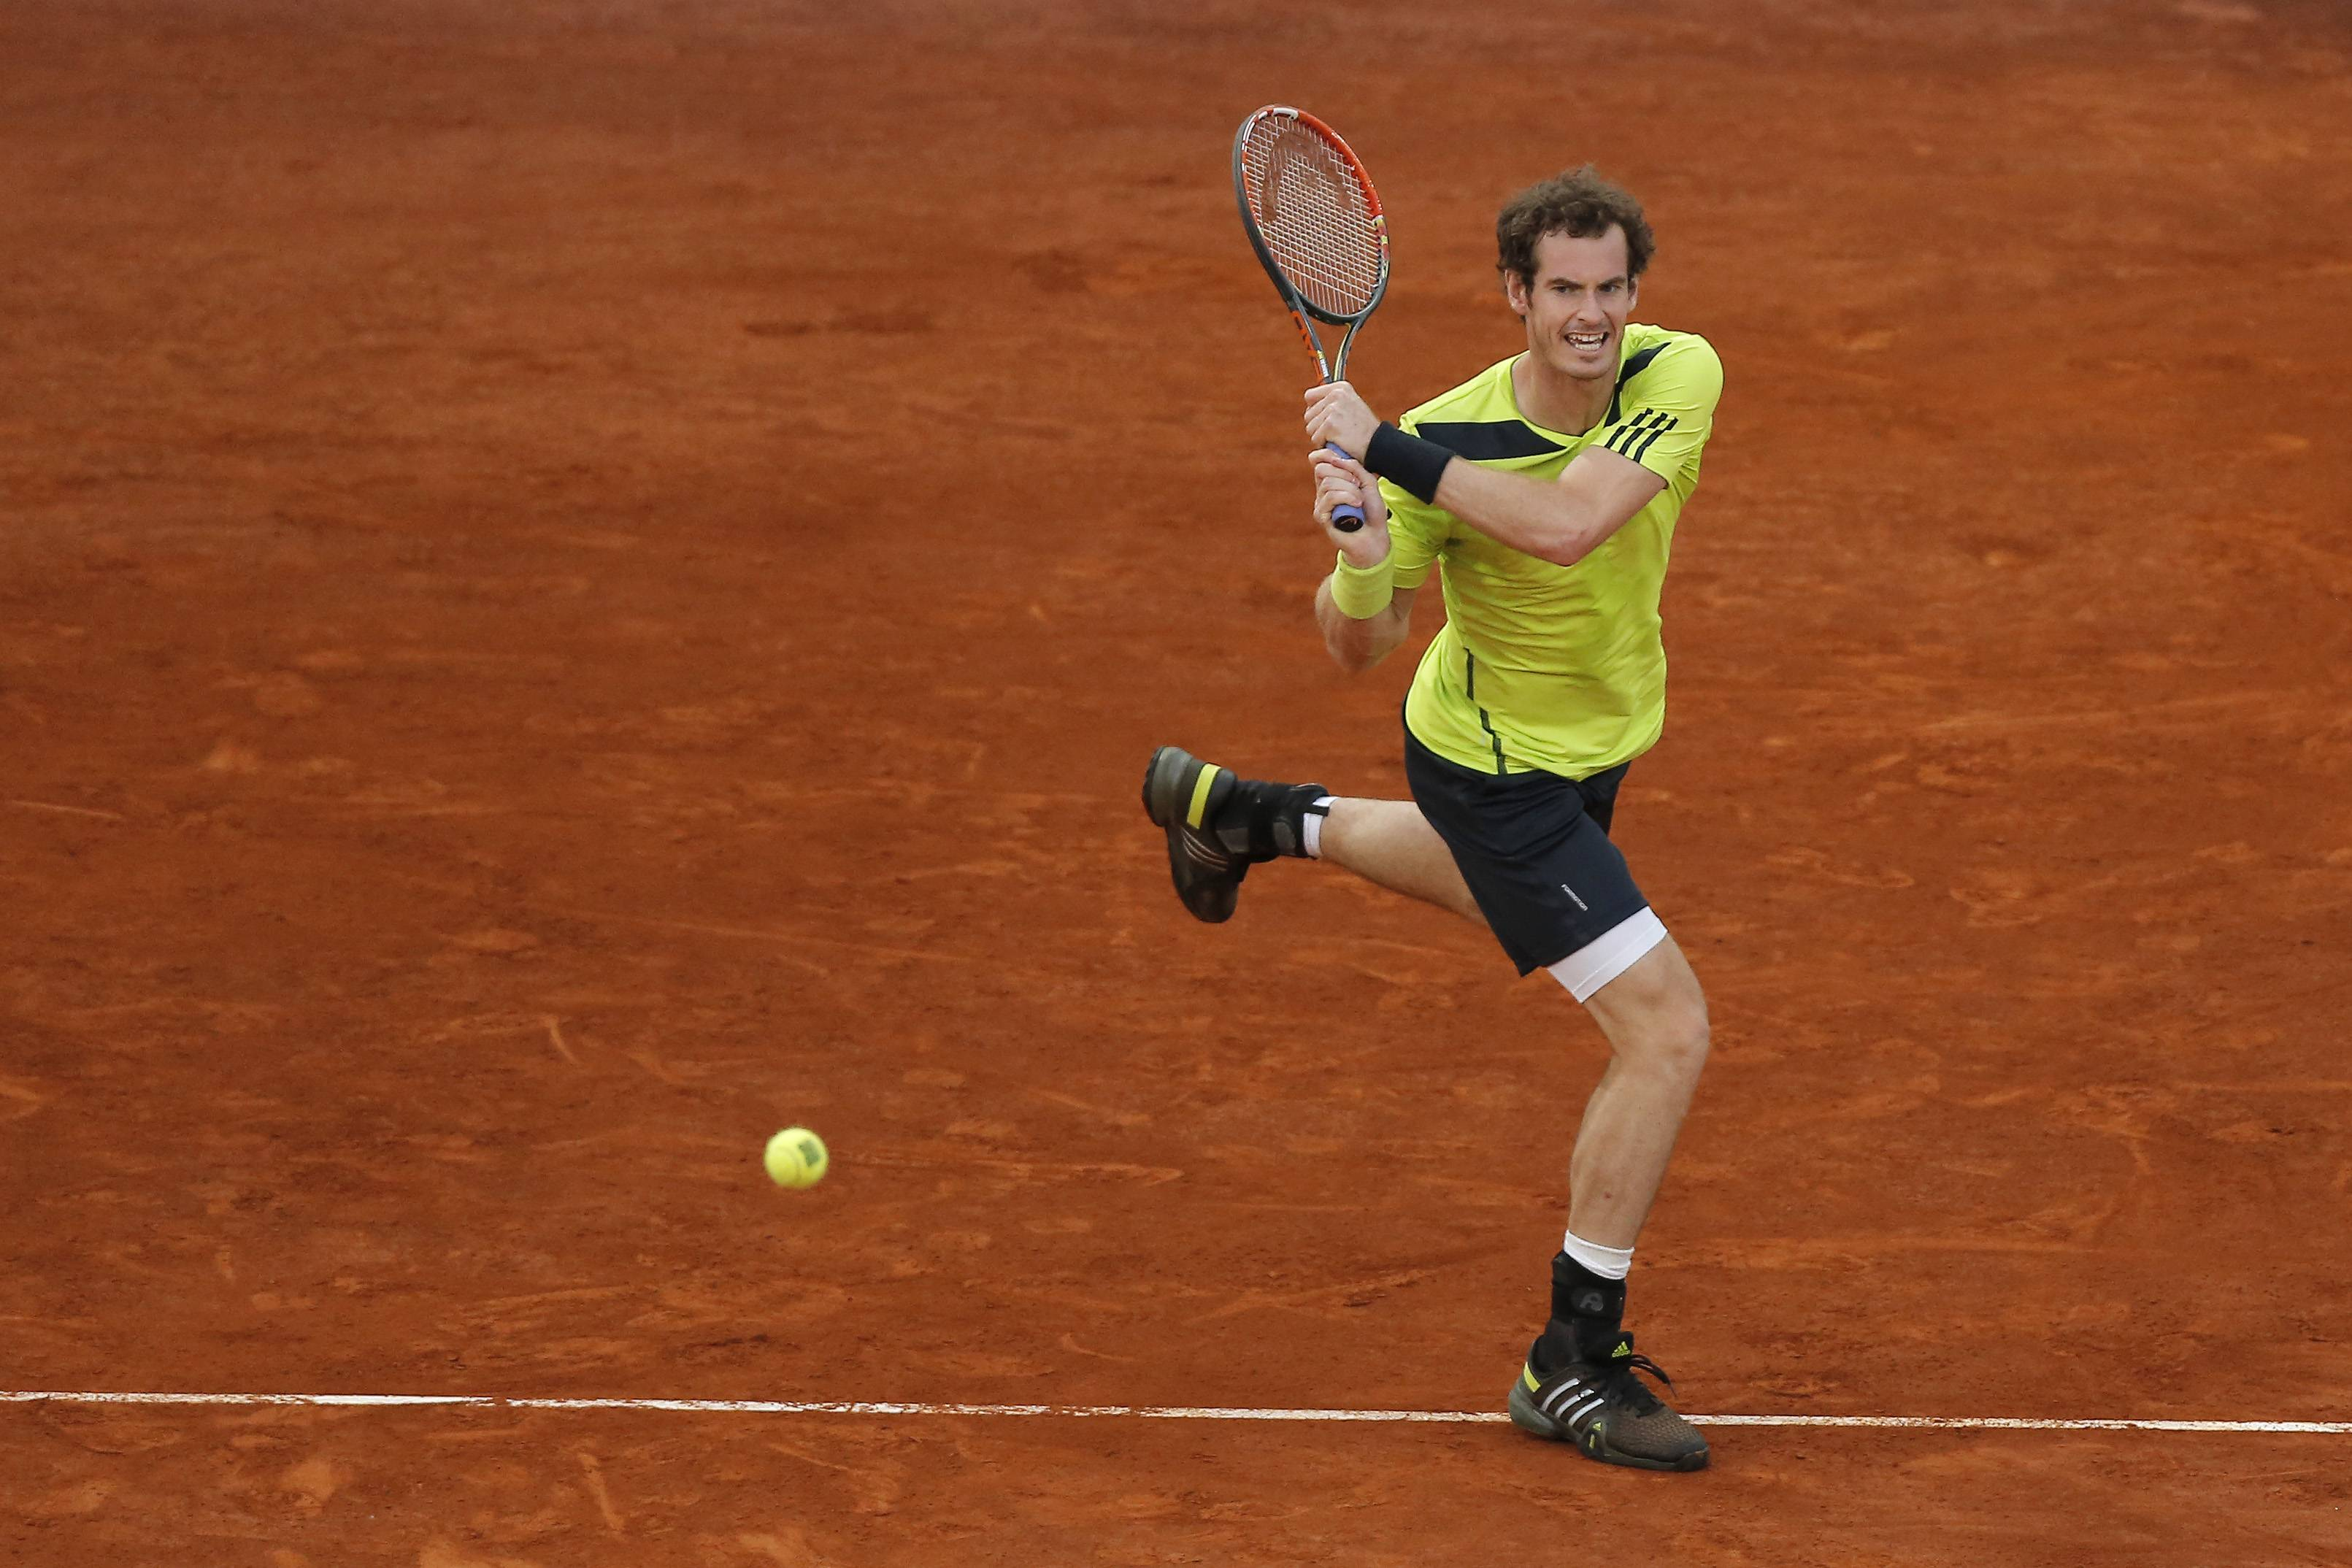 Andy Murray from Britain returns the ball during a Madrid Open tennis tournament match against Nicolas Almagro from Spain, in Madrid, Spain, Wednesday, May 7, 2014.